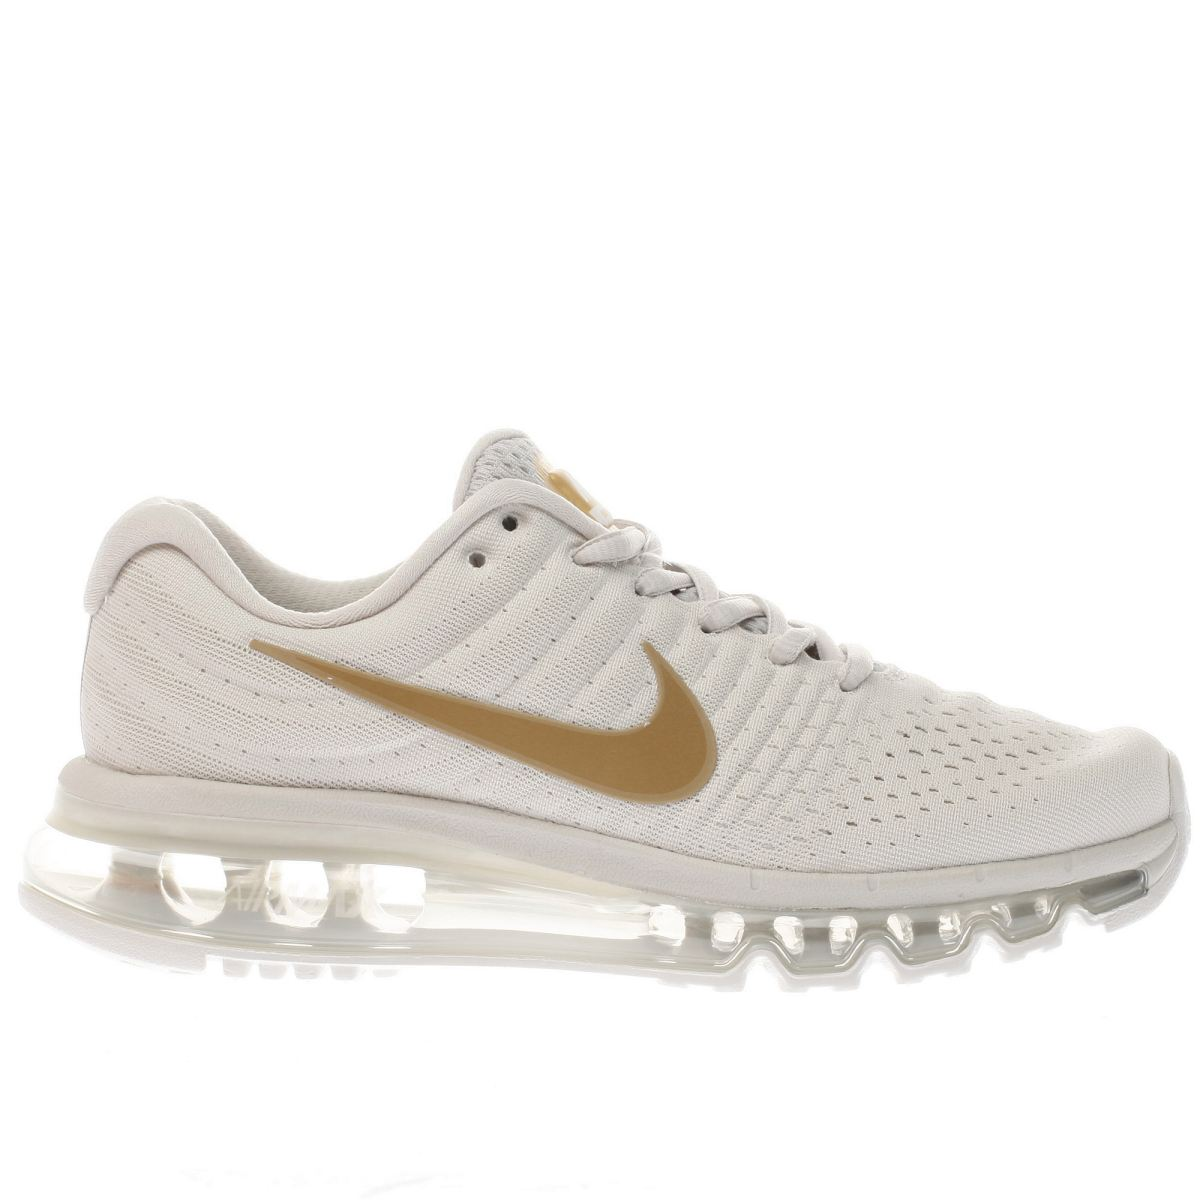 nike stone air max 2017 Girls Youth Trainers